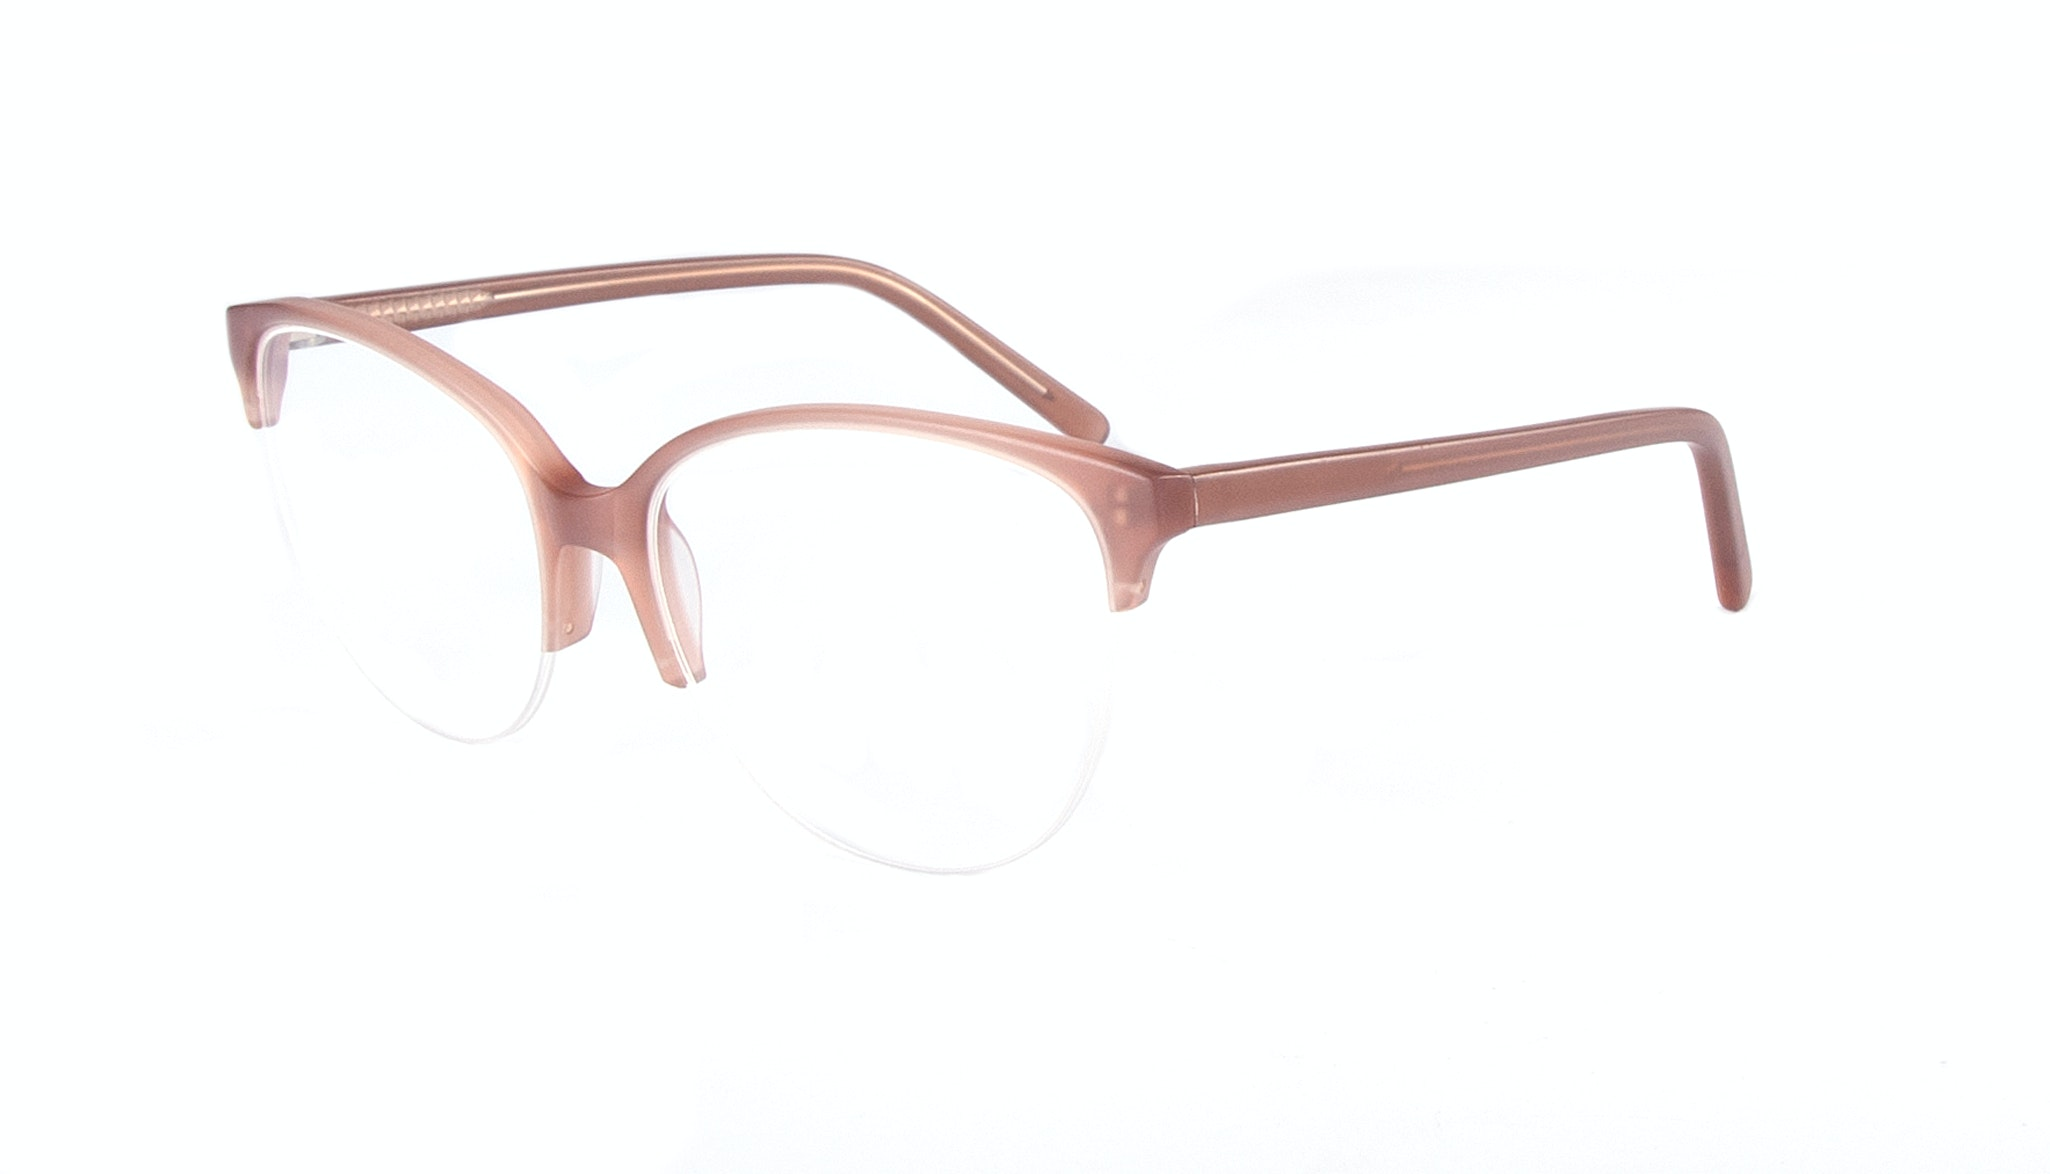 Affordable Fashion Glasses Cat Eye Round Semi-Rimless Eyeglasses Women Imagine Light Old Rose Tilt